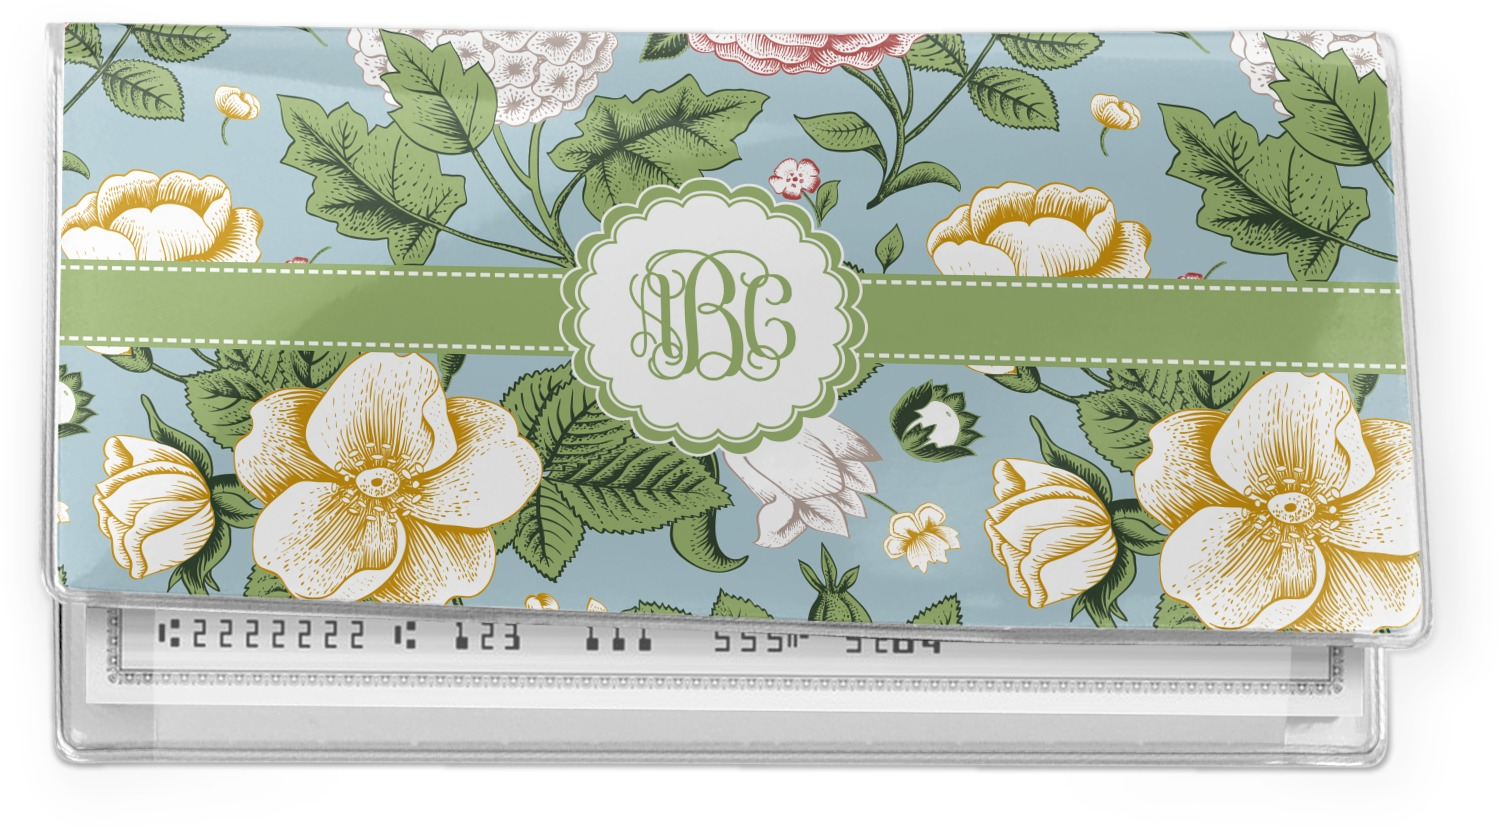 Vintage Flower Book Cover : Vintage floral vinyl check book cover personalized